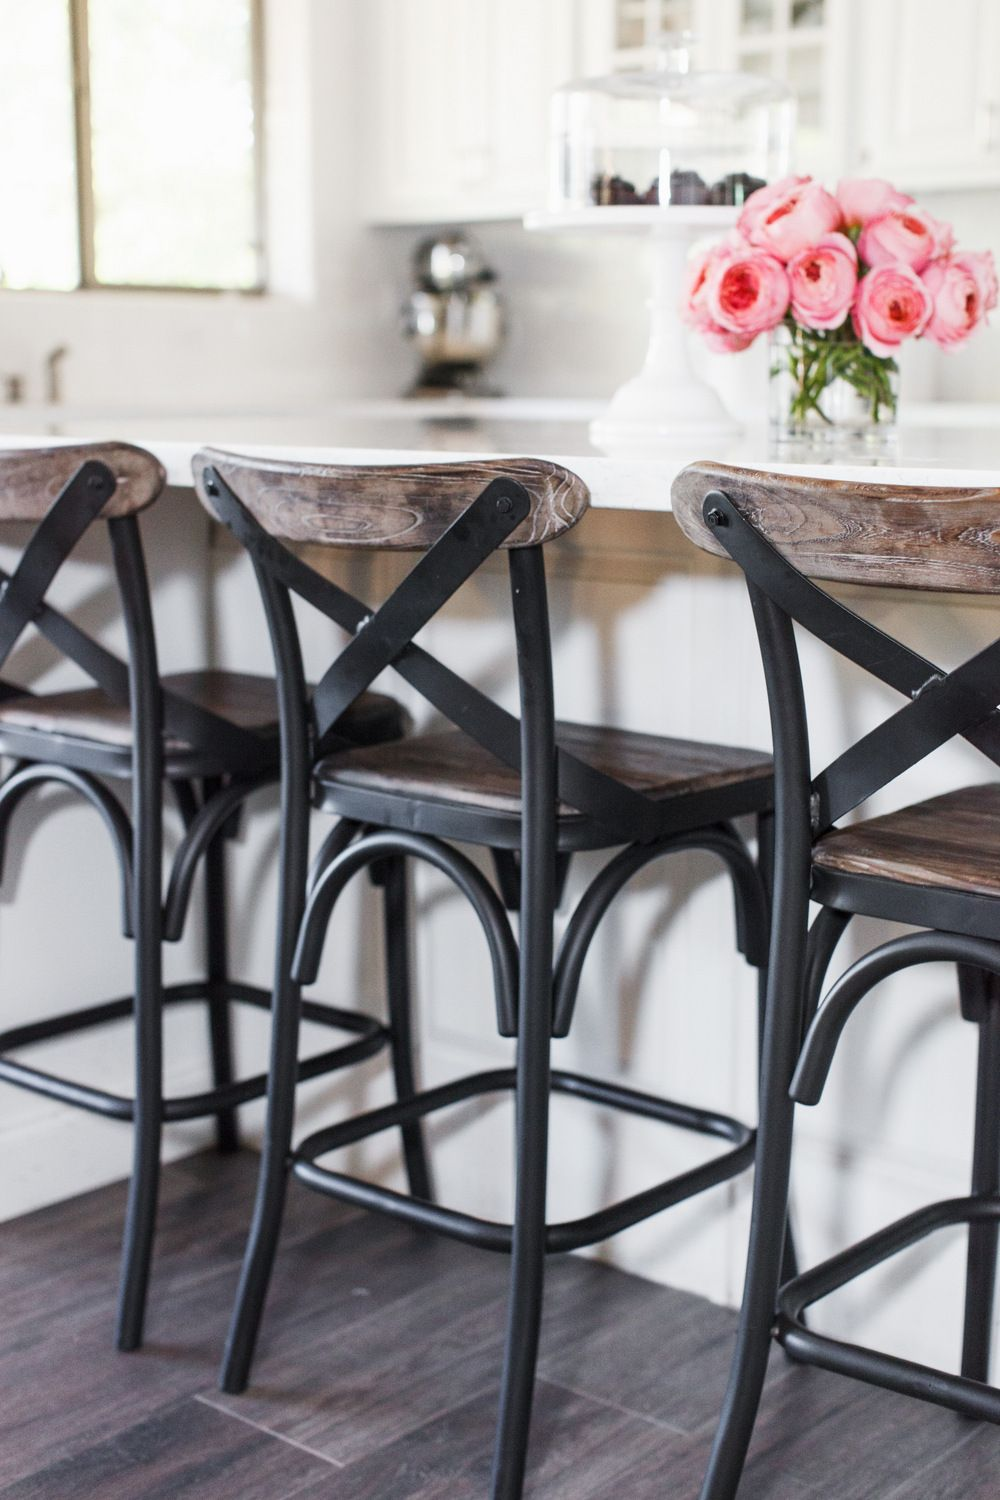 Admirable Would Blend Nicely In The Redone Kitchen And Kitchen Bar Dailytribune Chair Design For Home Dailytribuneorg